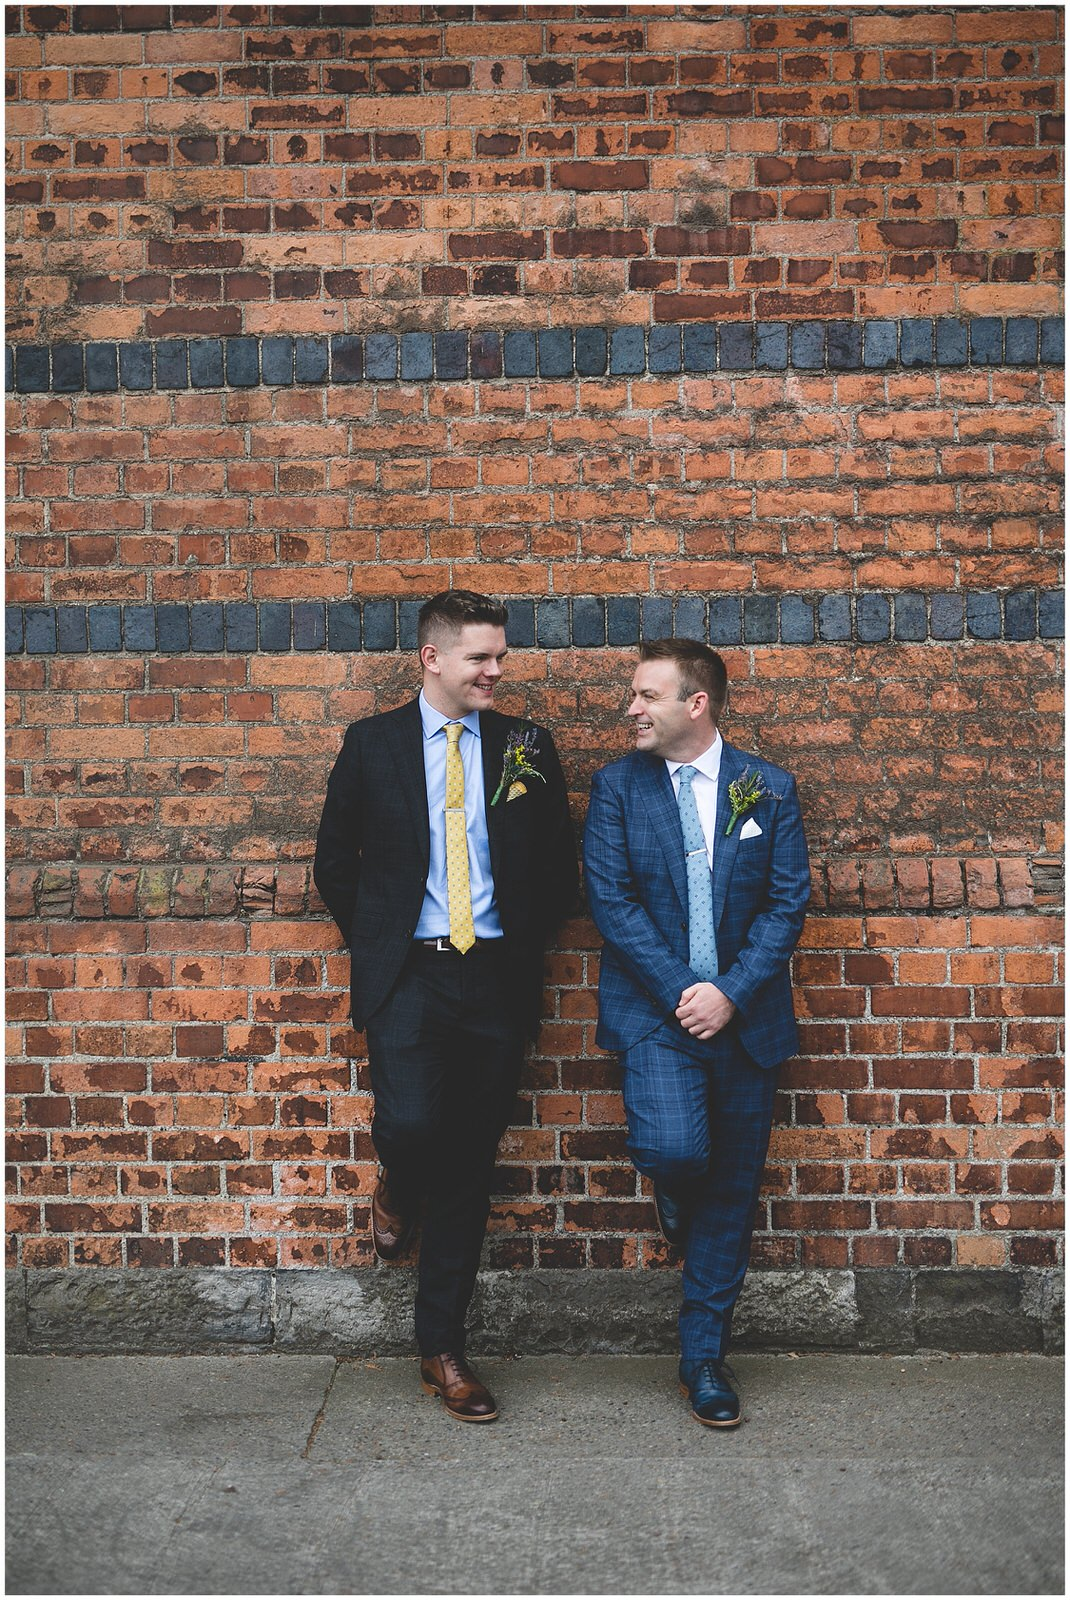 Red brick textured backdrop for wedding portraits